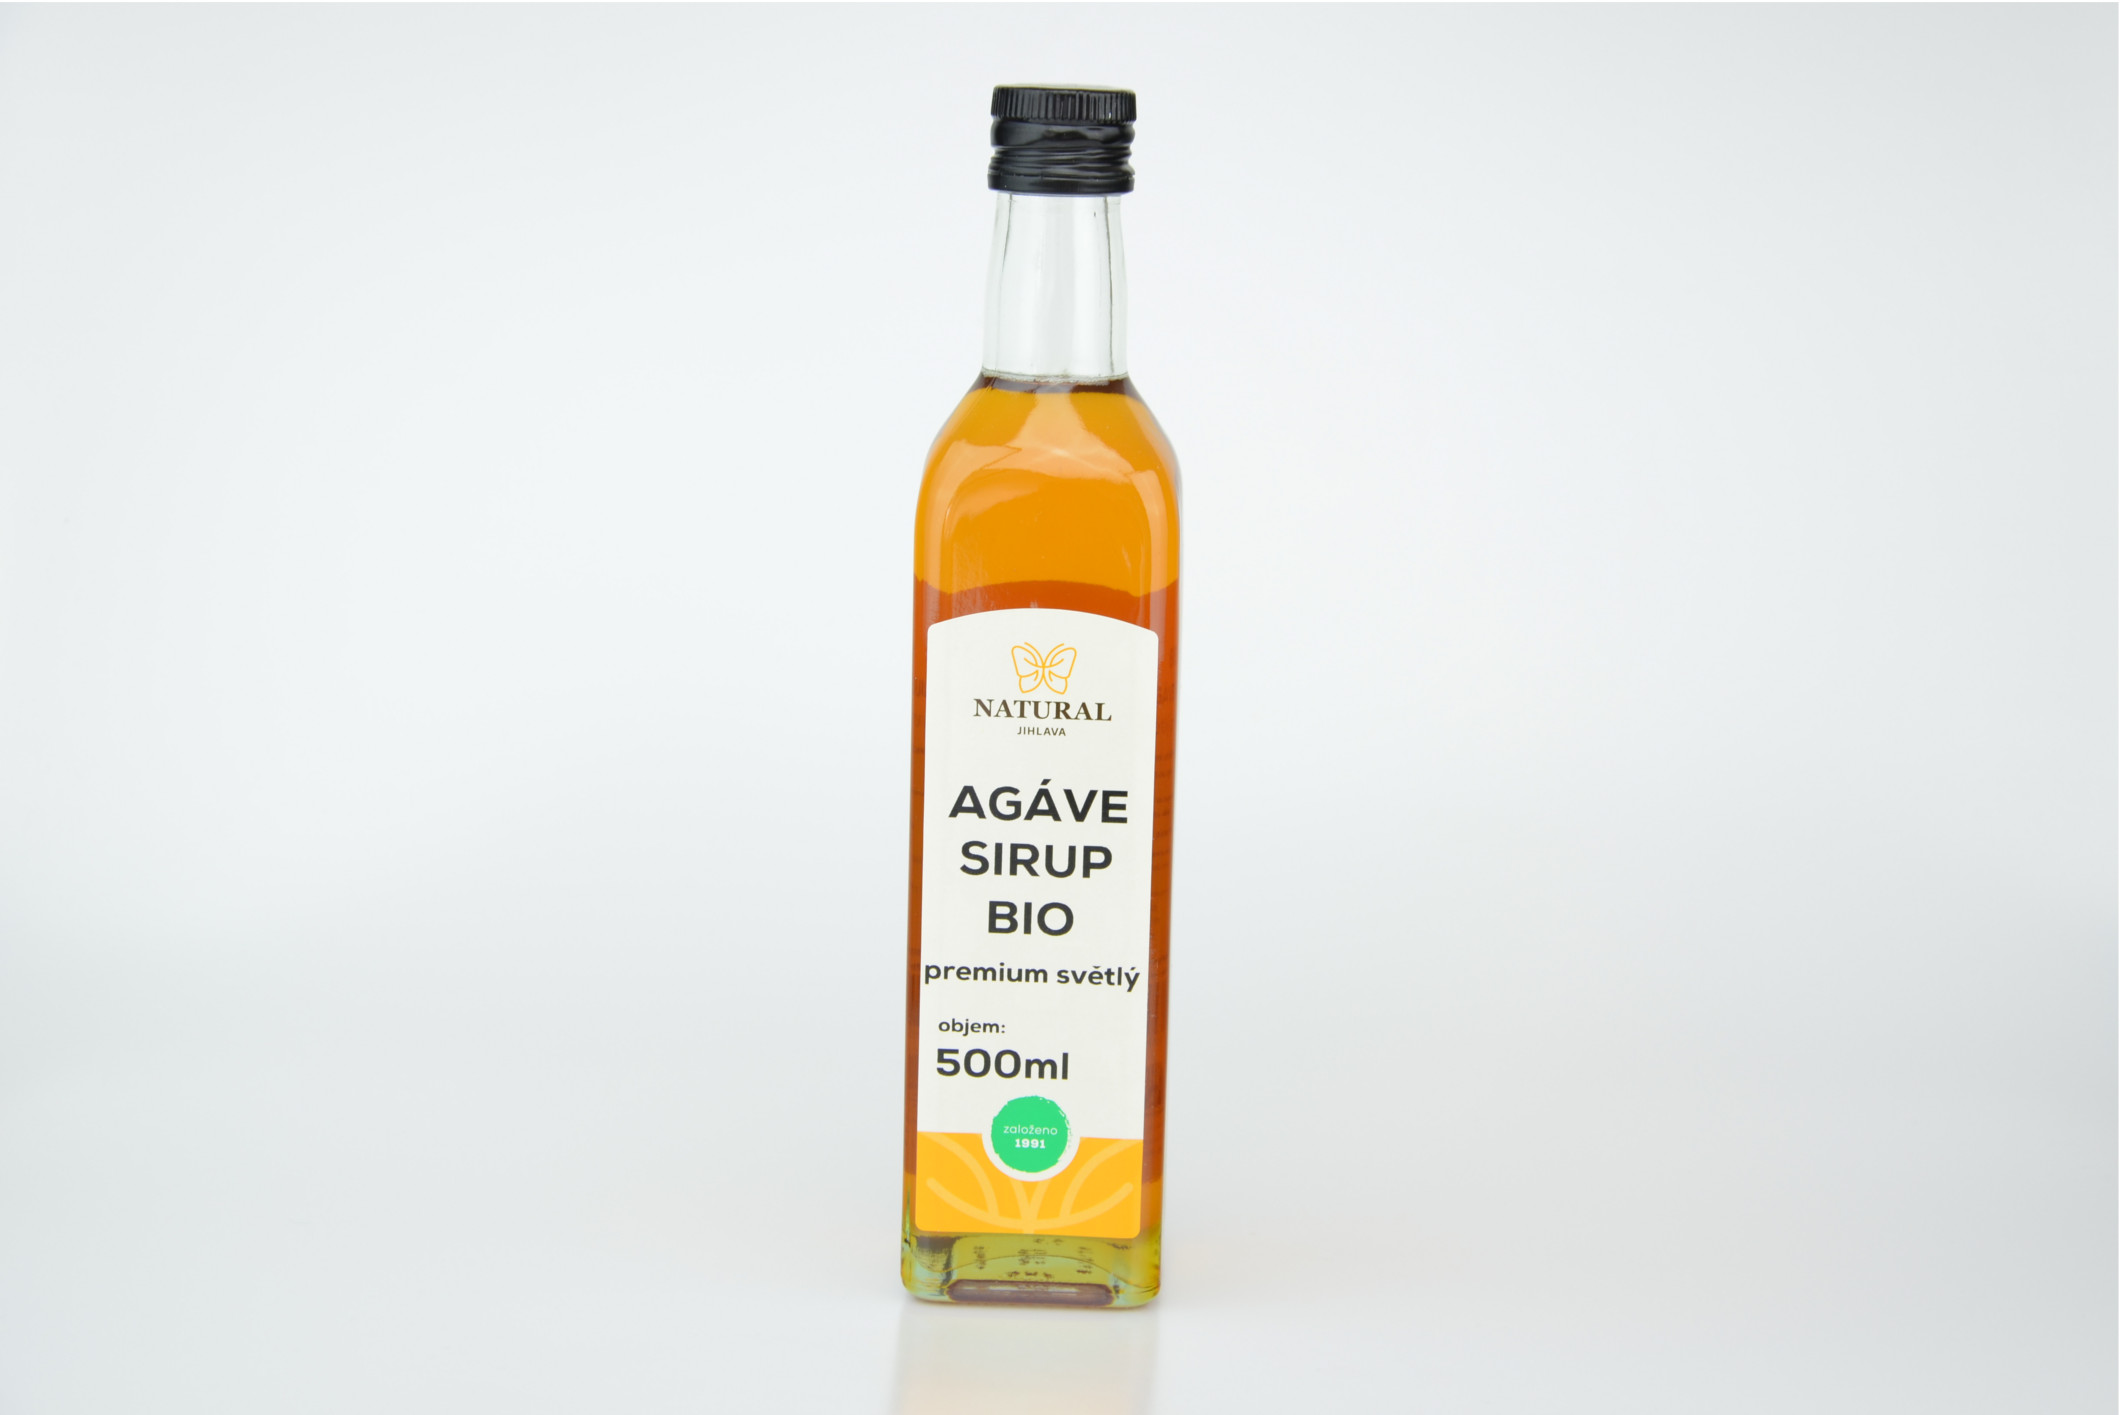 AGÁVOVÝ SIRUP BIO 500ml VIA NATURAE